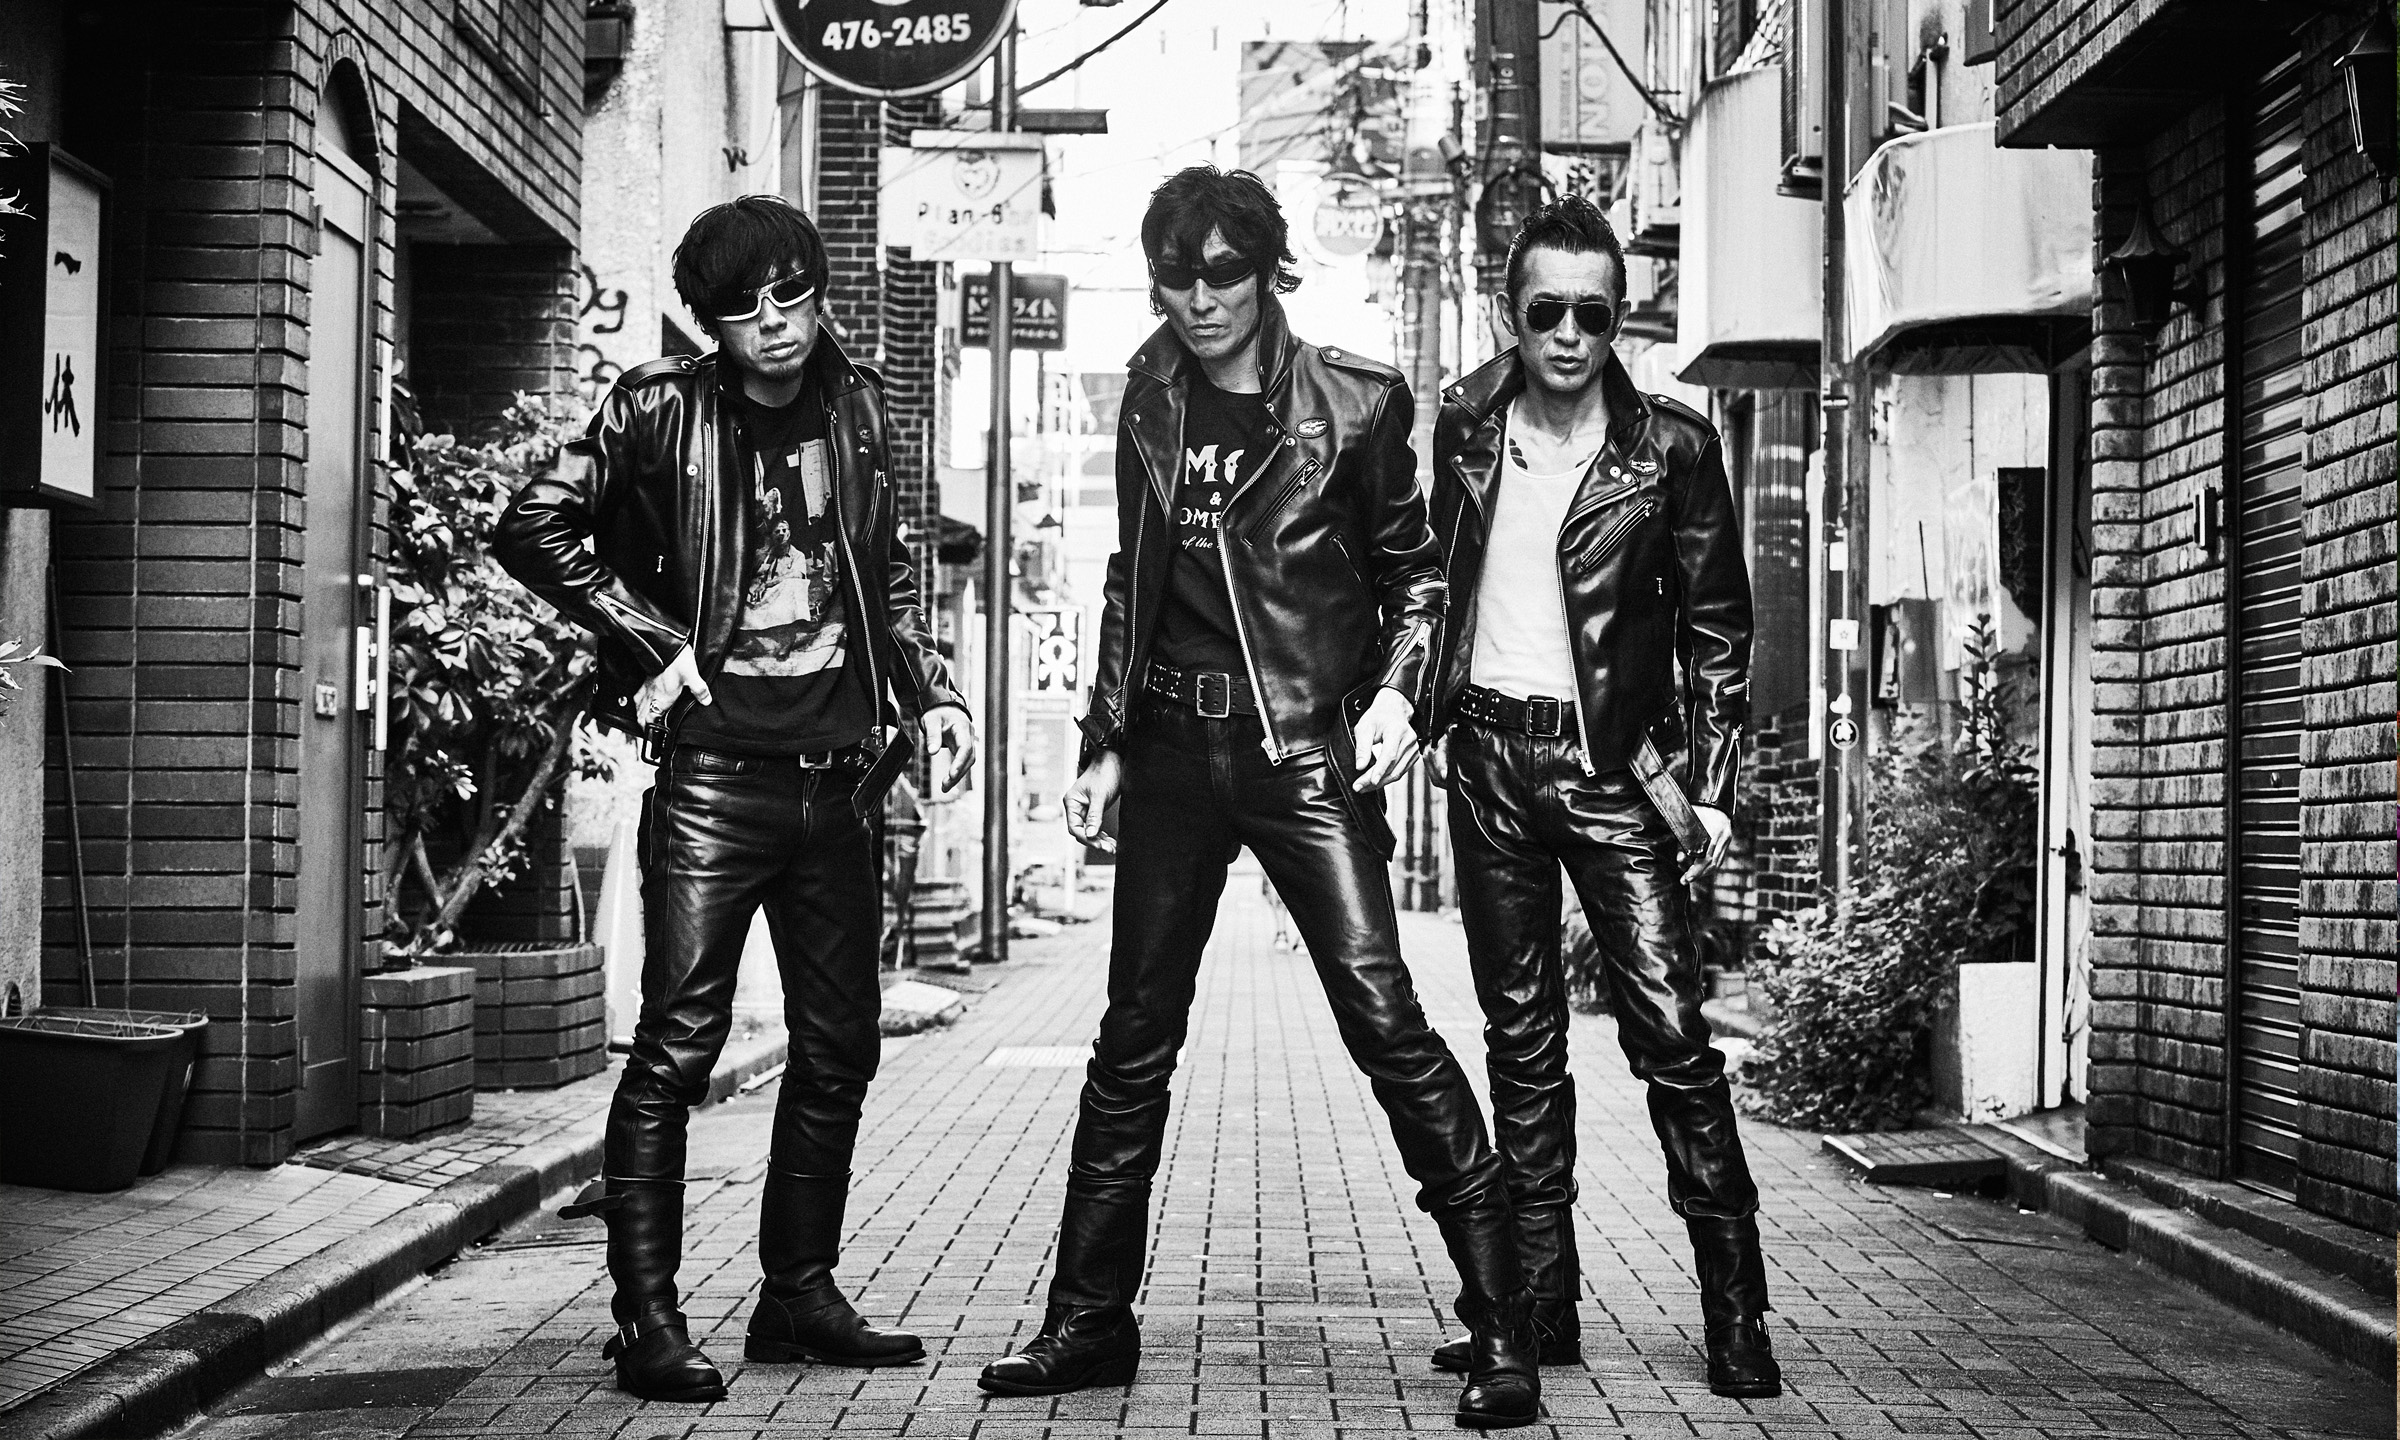 40年ぶりに新作ジャケットが誕生! GUITAR WOLF×Lewis Leathers -COLLABORATION JACKET-